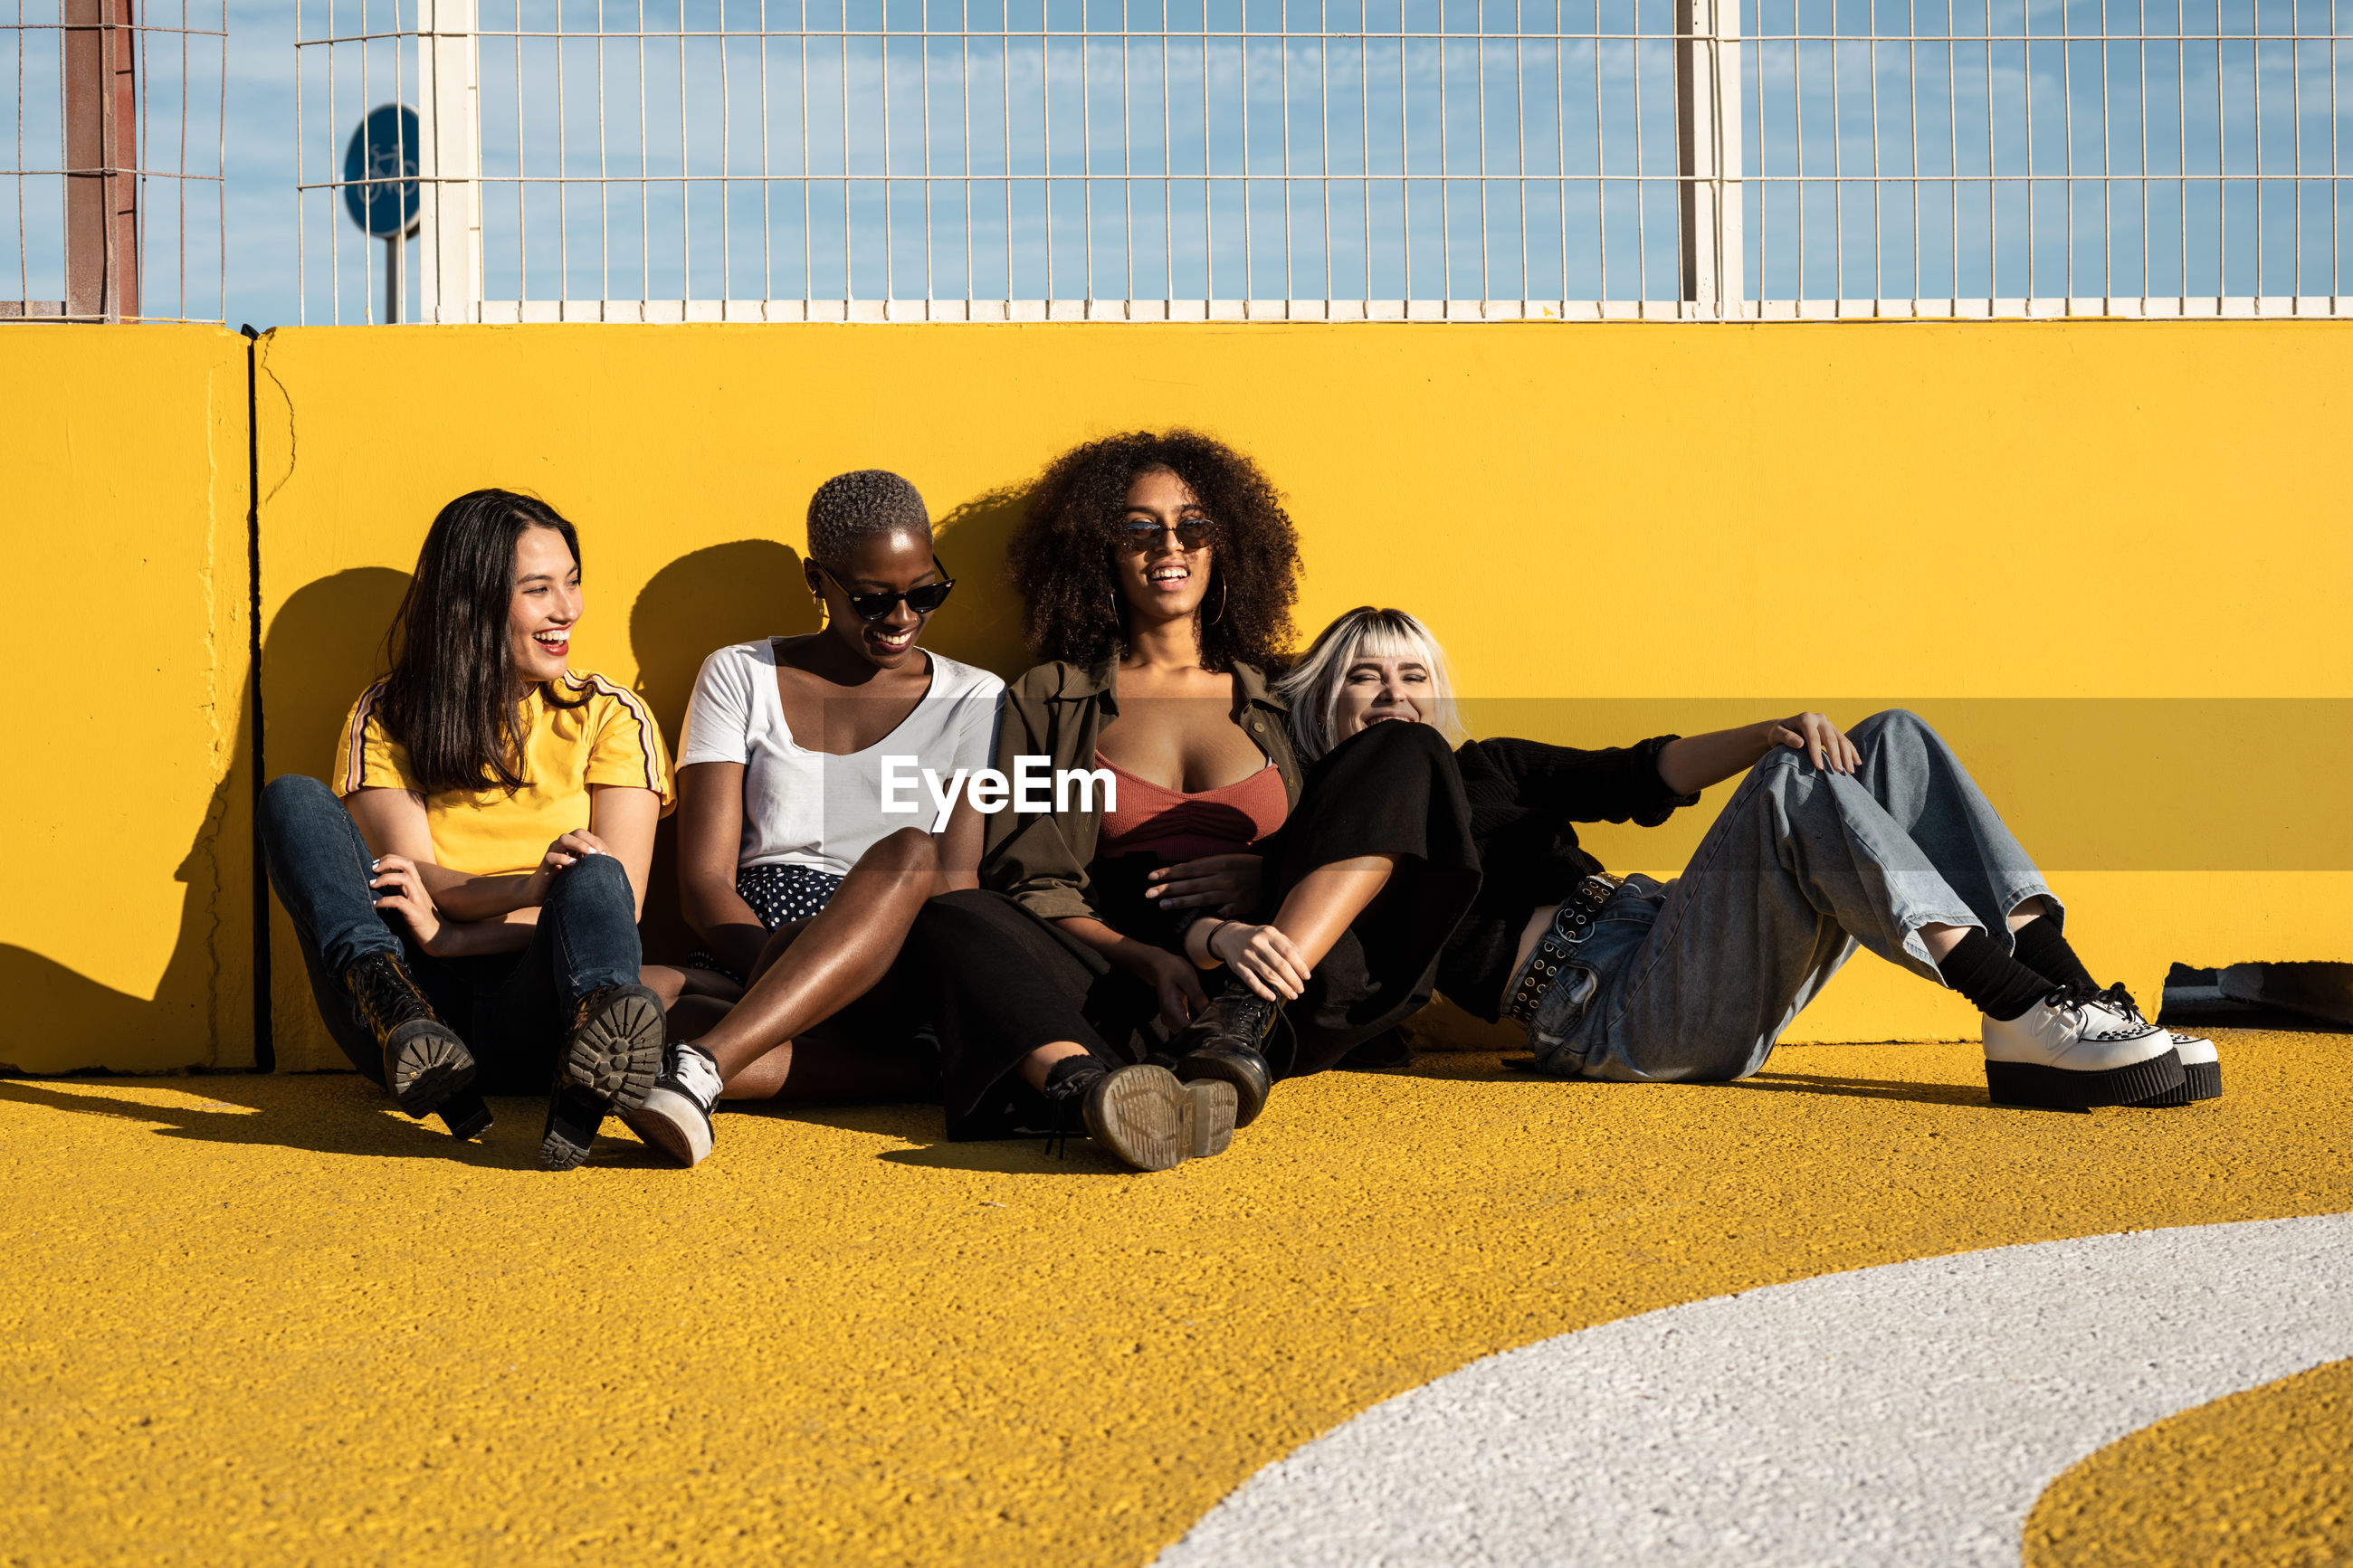 GROUP OF PEOPLE SITTING ON YELLOW SEAT